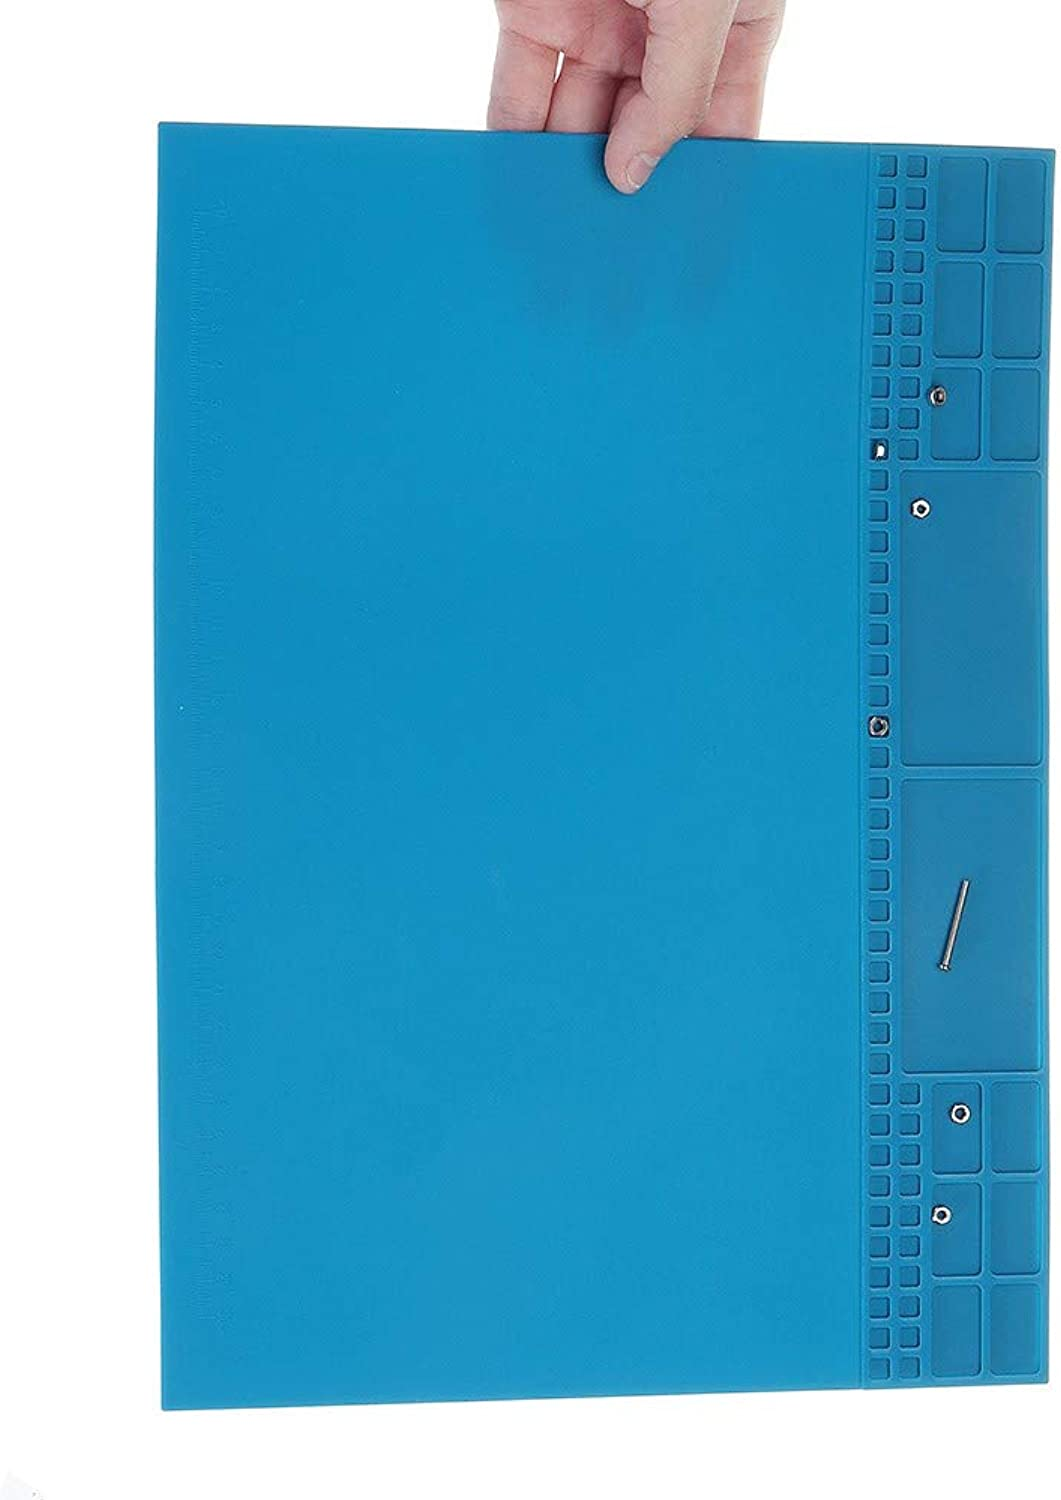 Professional Tools Magnetic RYT r Heat Insulation Soldering Silicone Pad Maintenance Platform with Screw Area 25x35cm